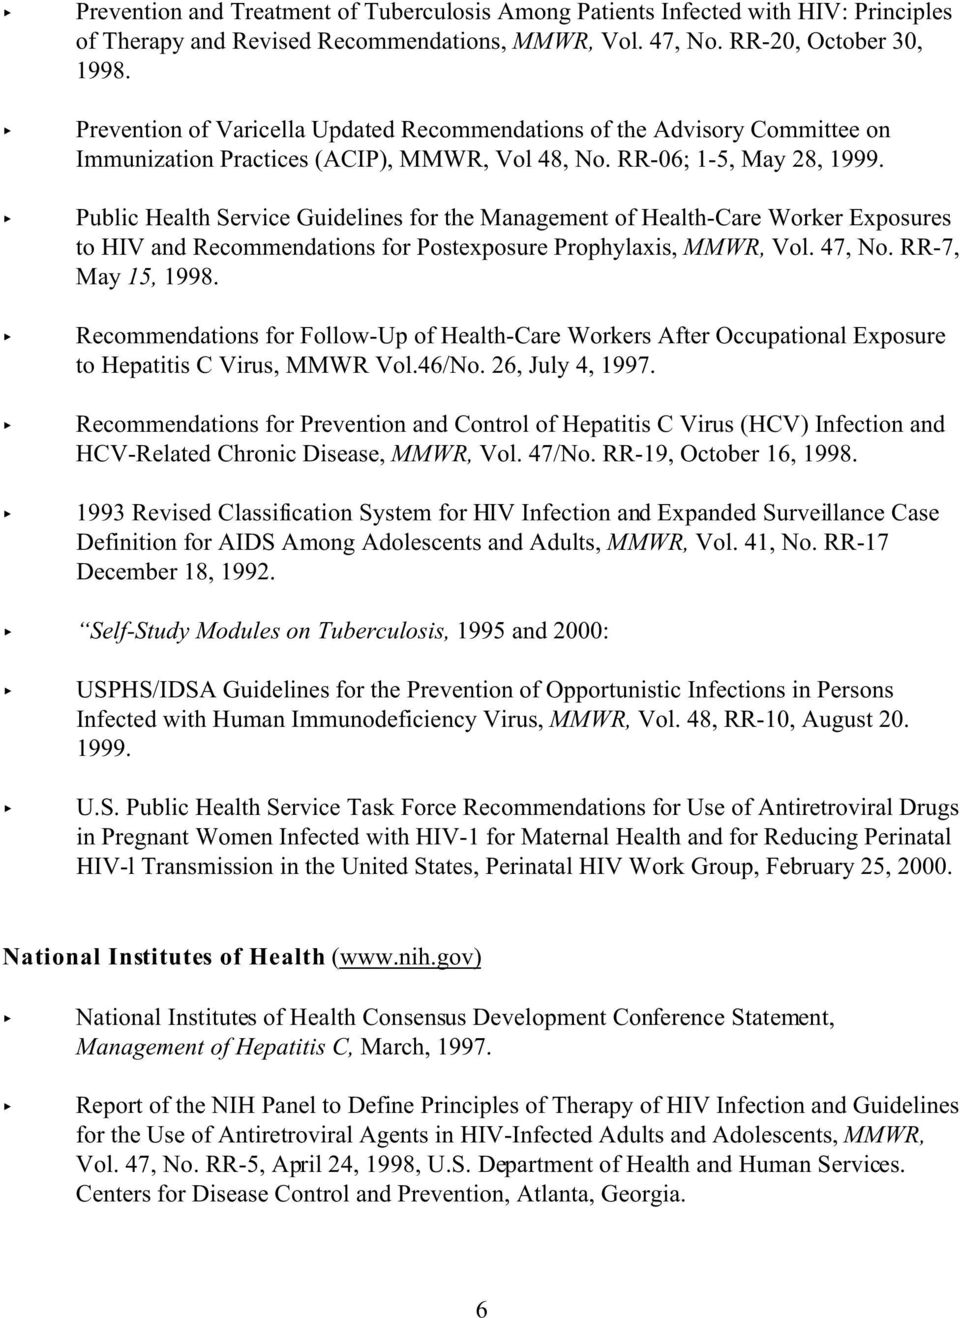 Public Health Service Guidelines for the Management of Health-Care Worker Exposures to HIV and Recommendations for Postexposure Prophylaxis, MMWR, Vol. 47, No. RR-7, May 15, 1998.